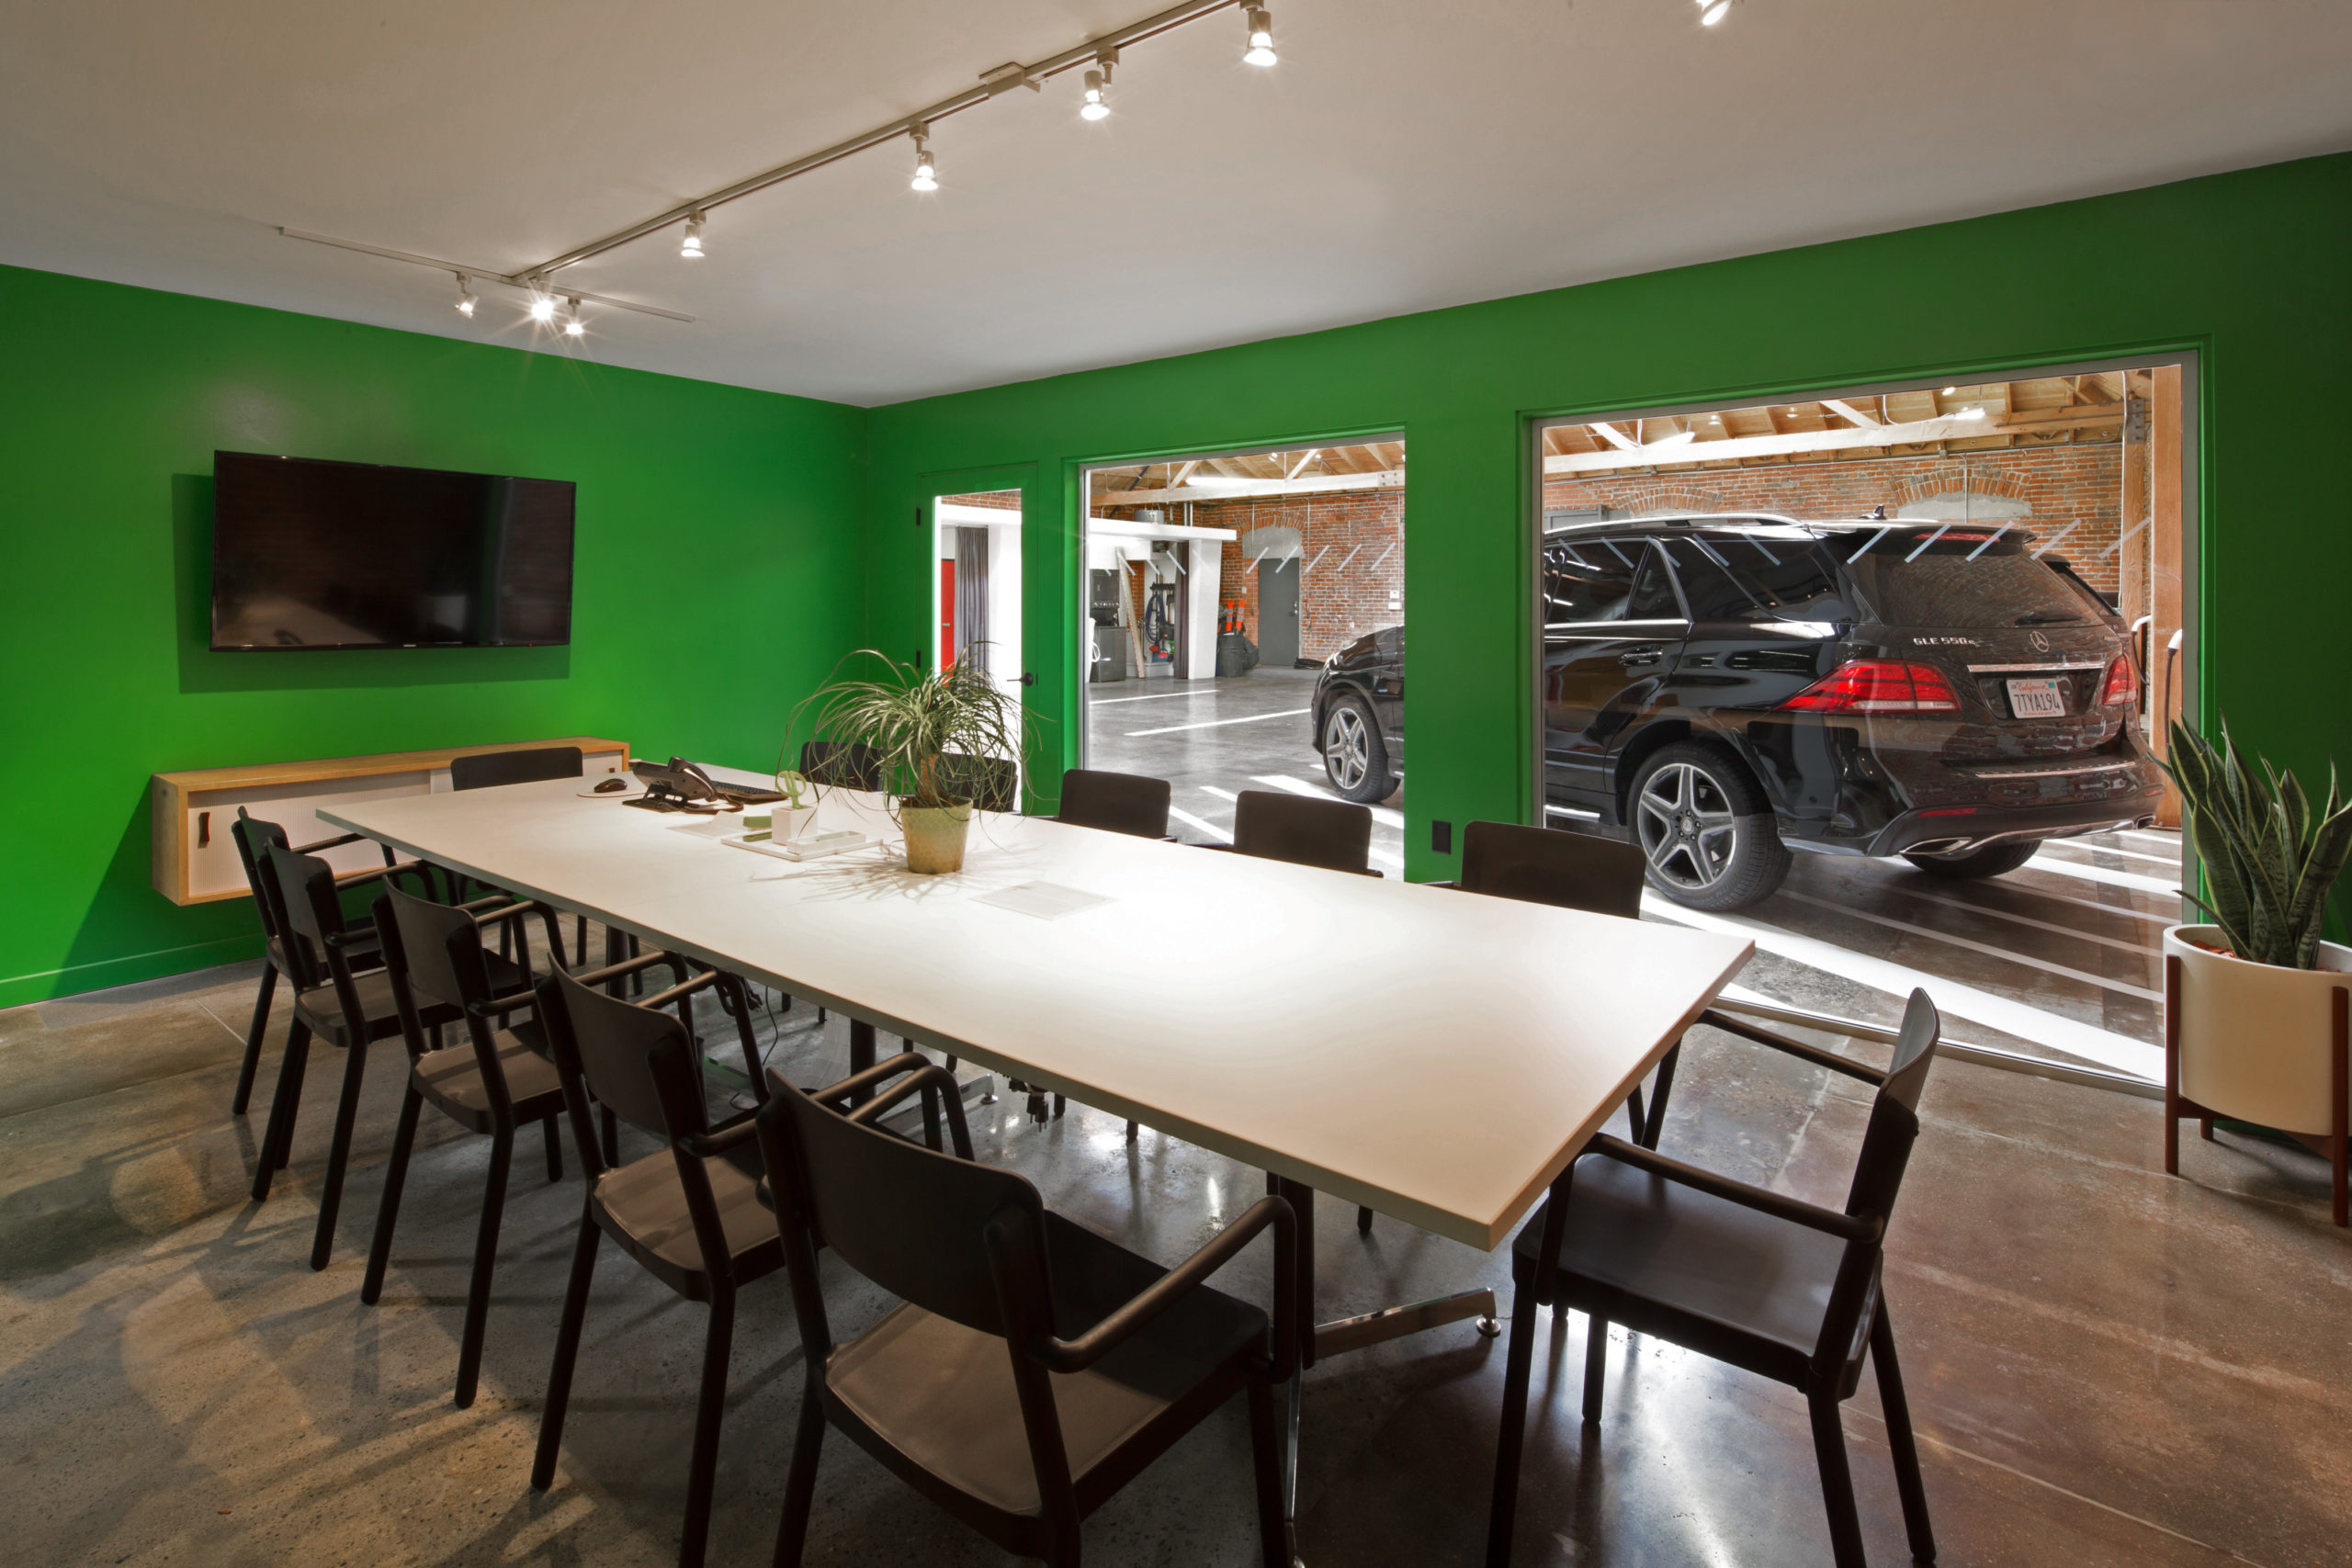 MGS Meeting Room Green Room Mercedes Benz